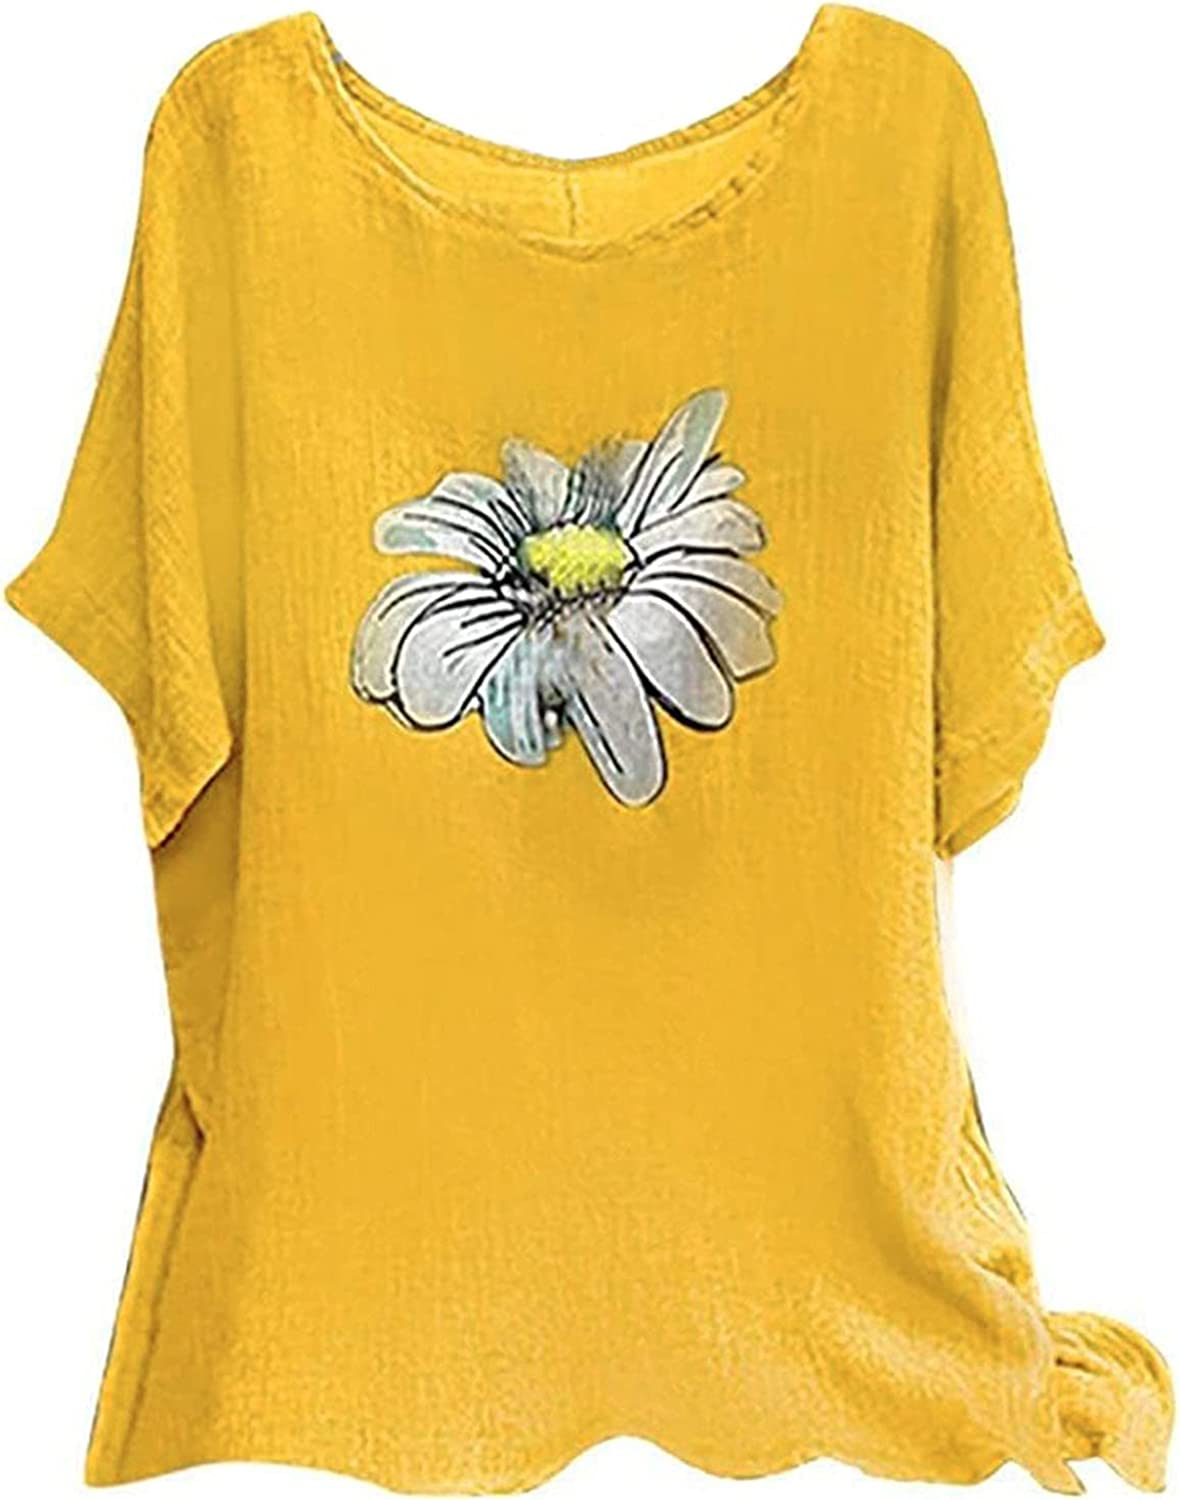 summer tops for women-Print O Neck Blouse Sleeve Short Tee Max 81% OFF Fashionable Baggy